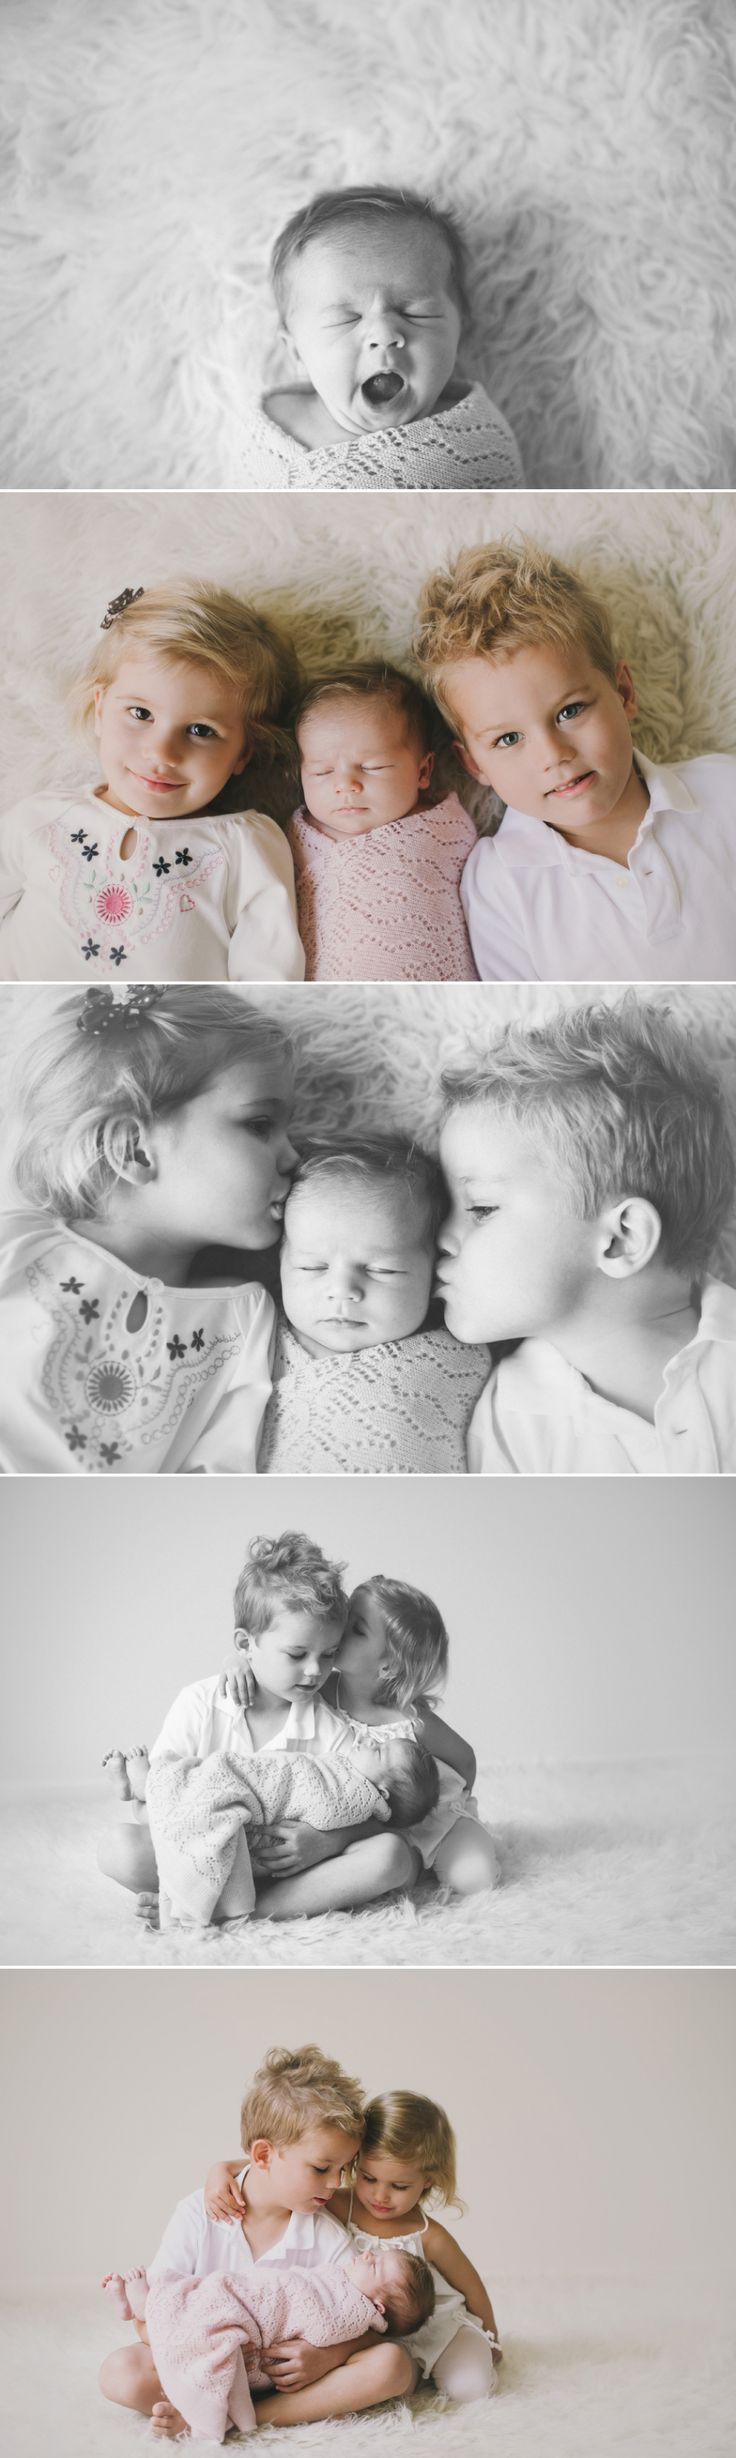 fantastic sibling shots with newborn!